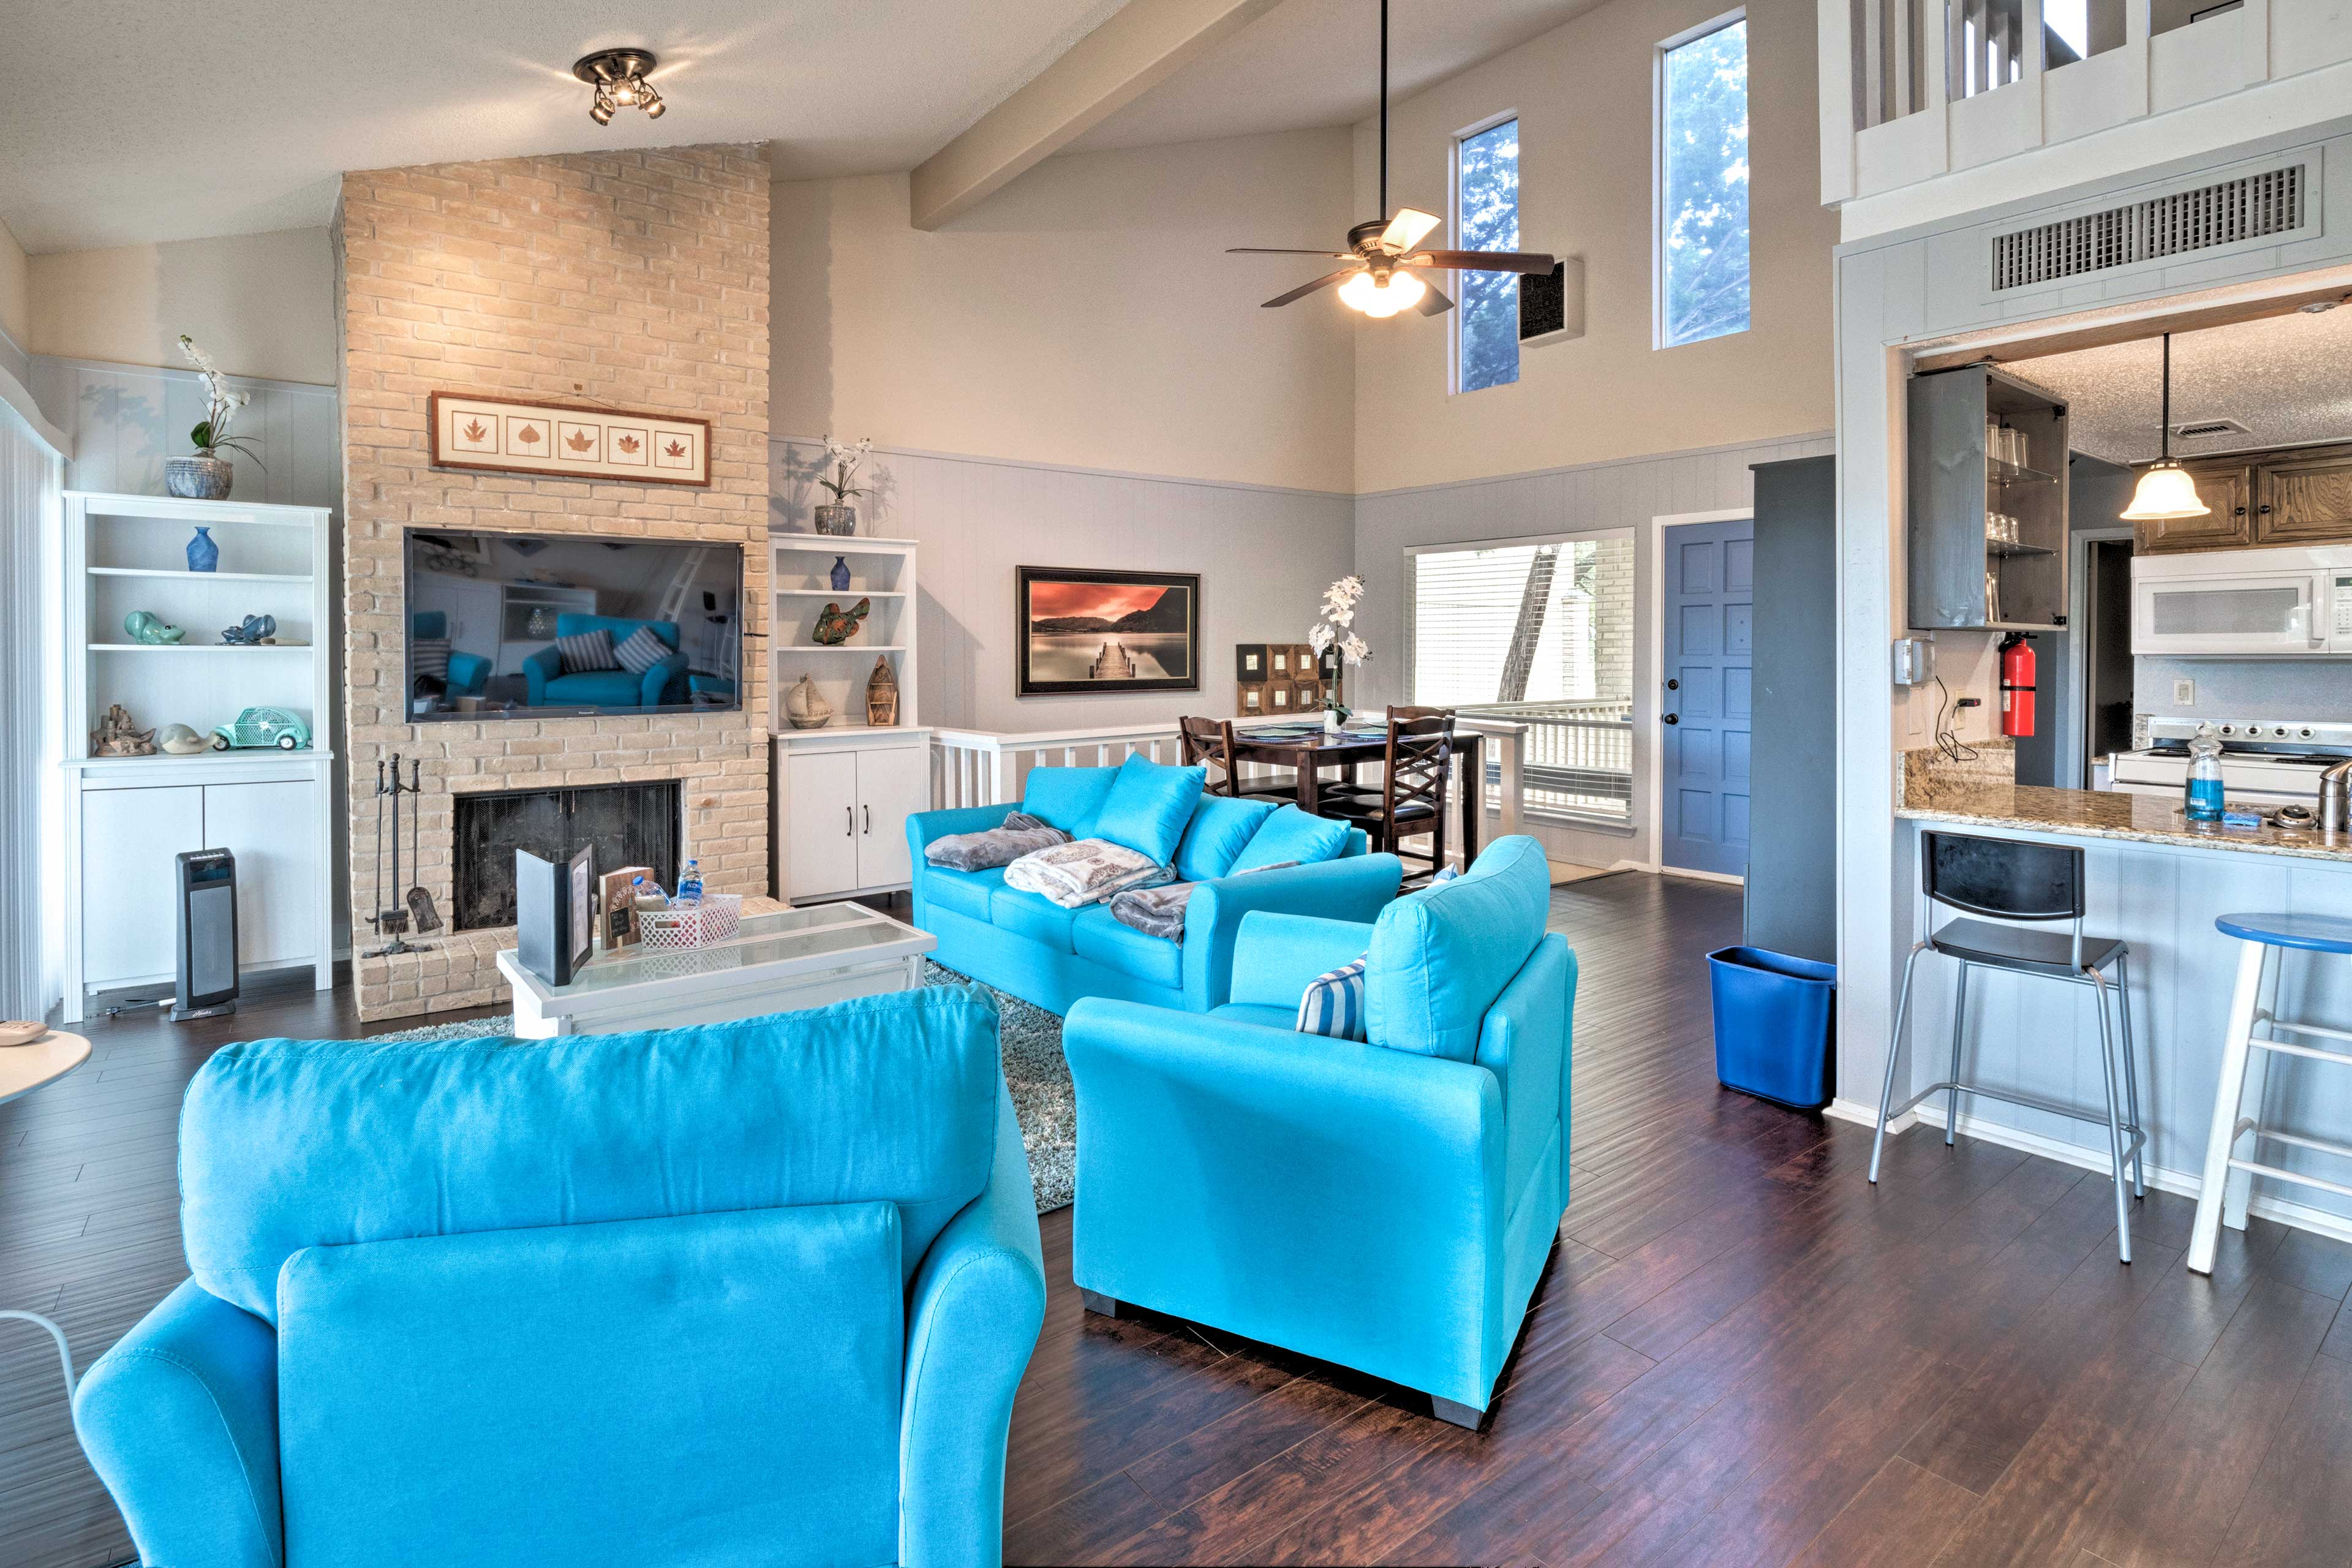 This home for 7 offers 2 bedrooms and 2 bathrooms.